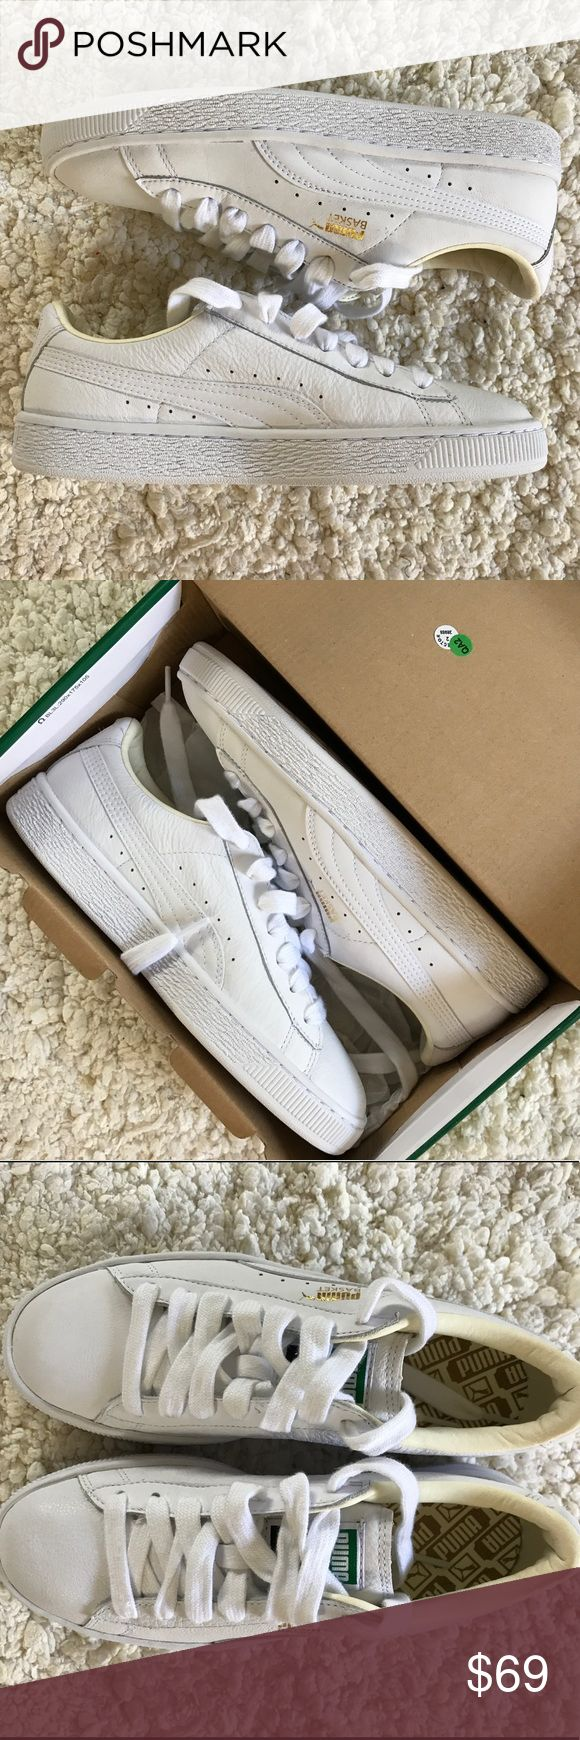 Puma Basket Sneakers Puma Basket Classic White Sneakers. New. Fits size 8/8.5  (Let me know if you'd like me to include the box) Puma Shoes Sneakers